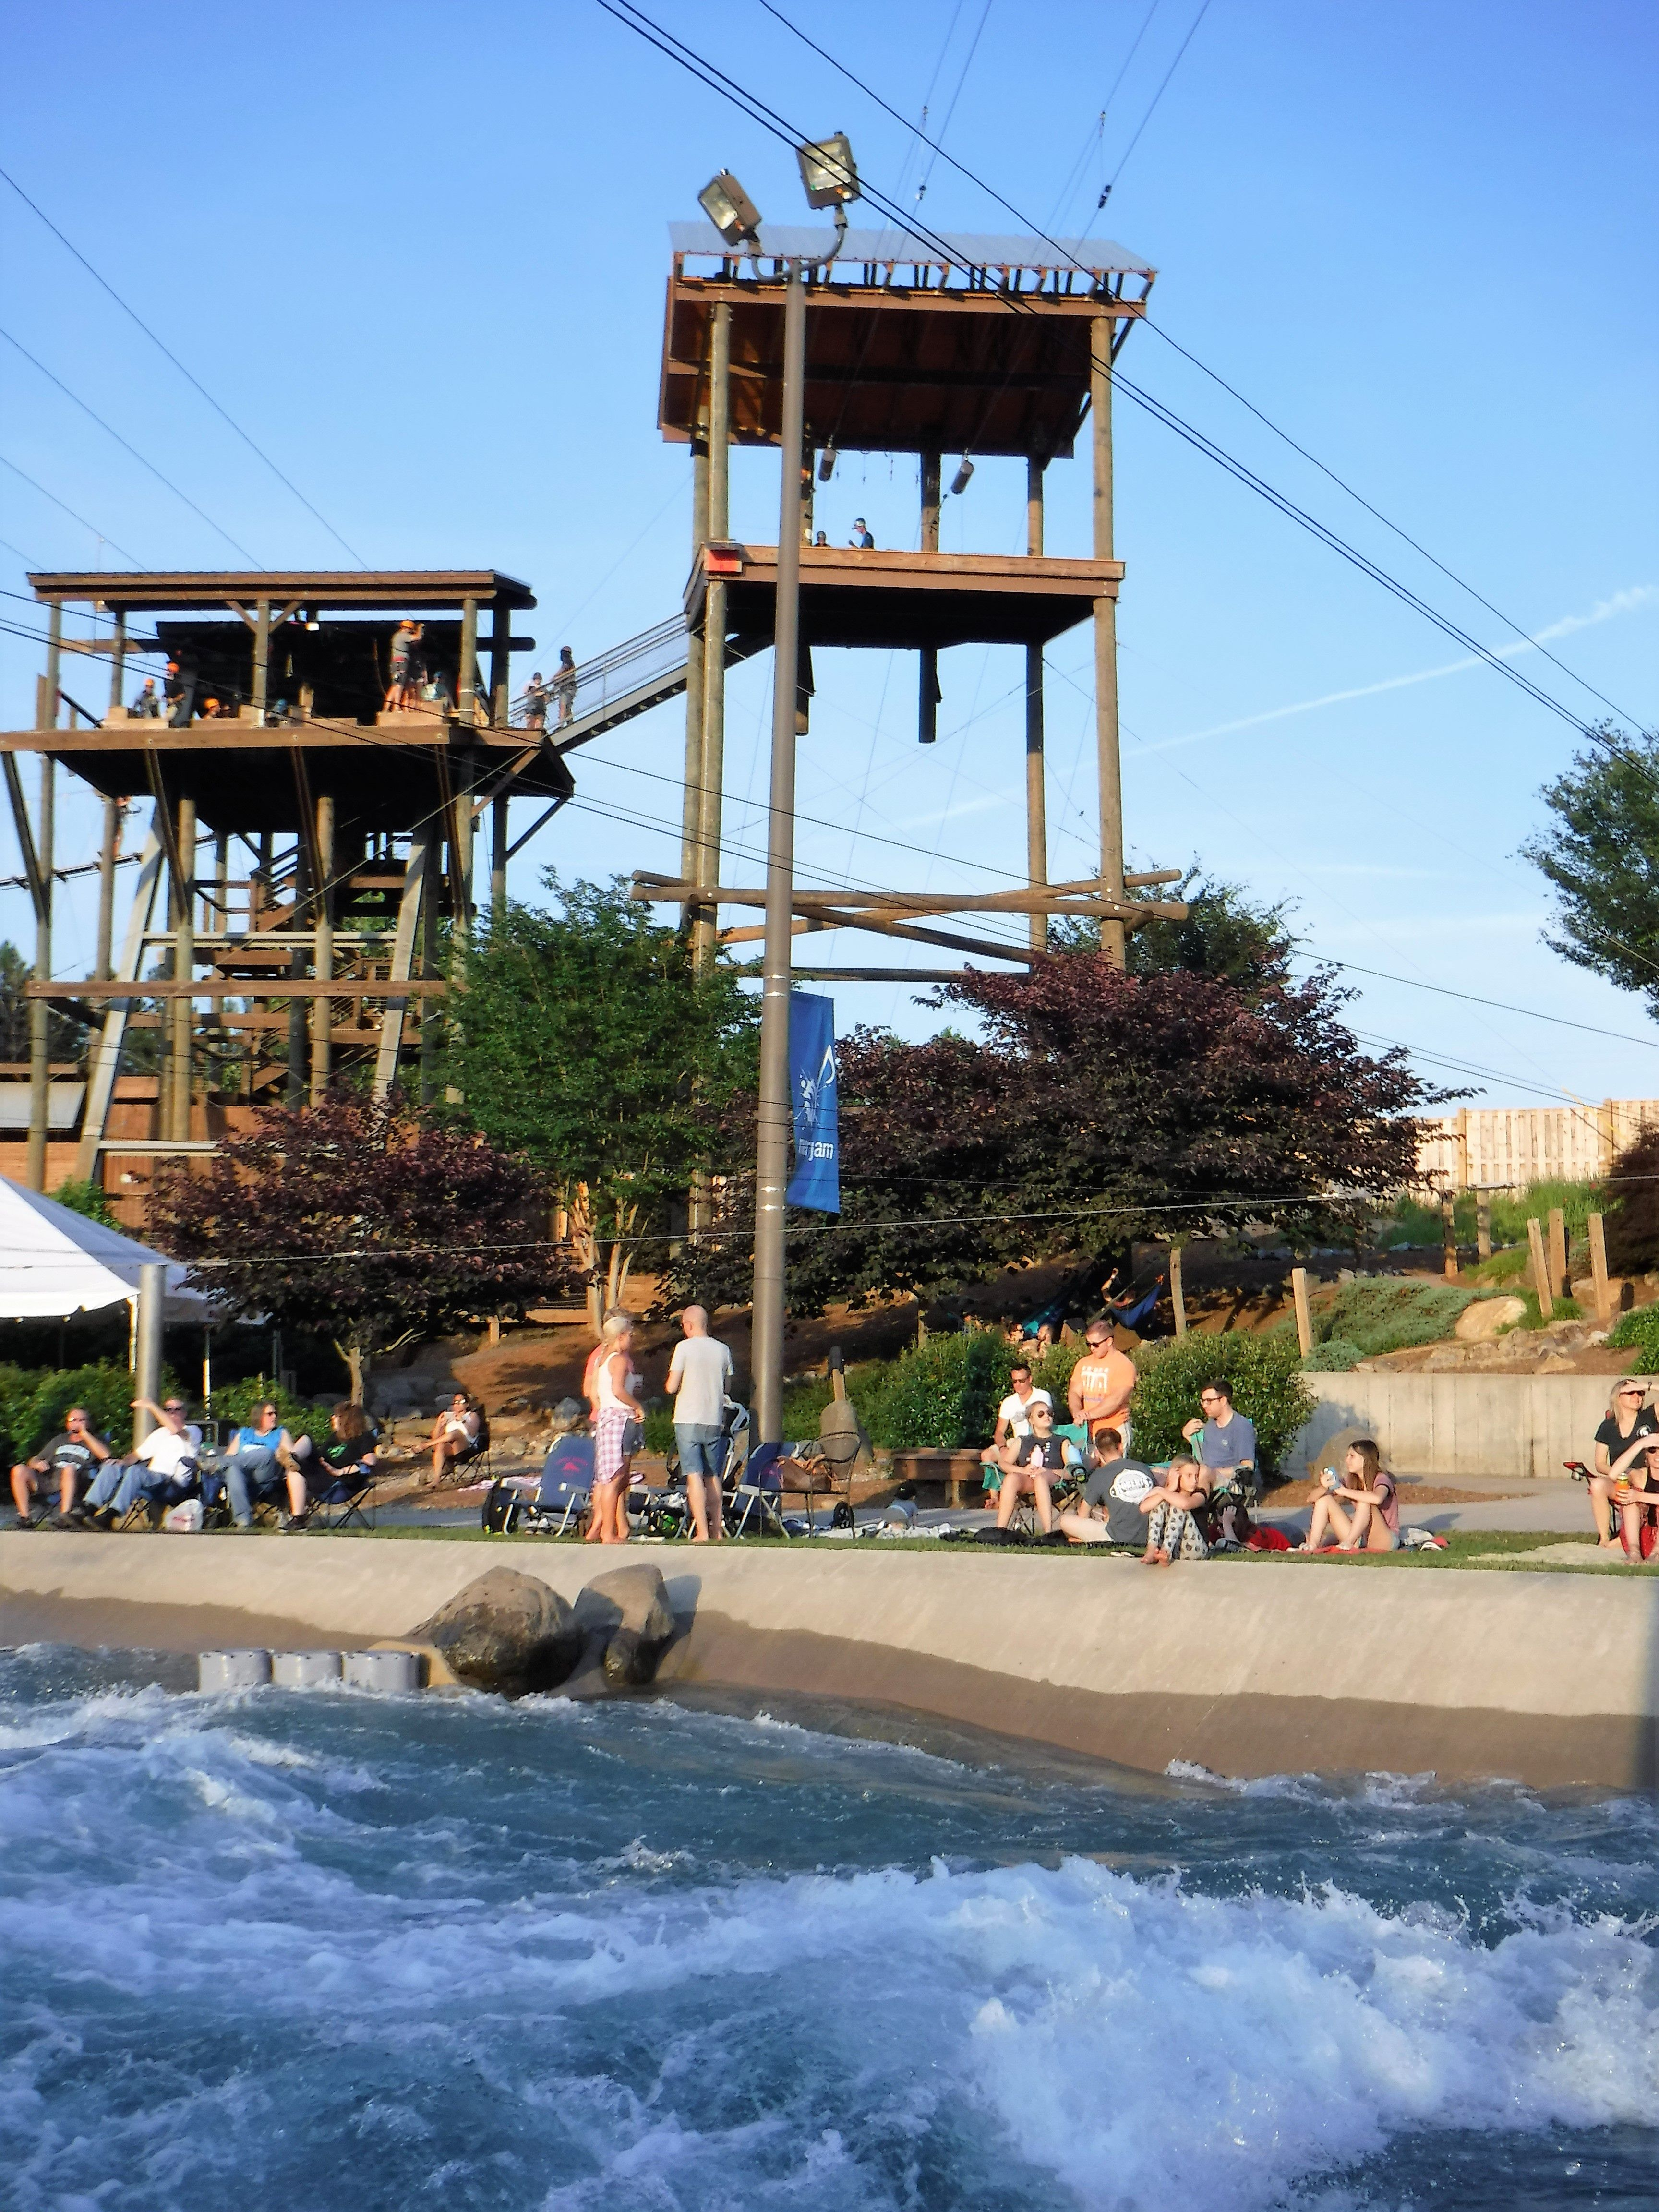 Amazing Place To Go For White Water Rafting Zip Lining Rock Climbing 100 Foot Free Fall And Ropes Courses Ju White Water Rafting Places To Go Ropes Course